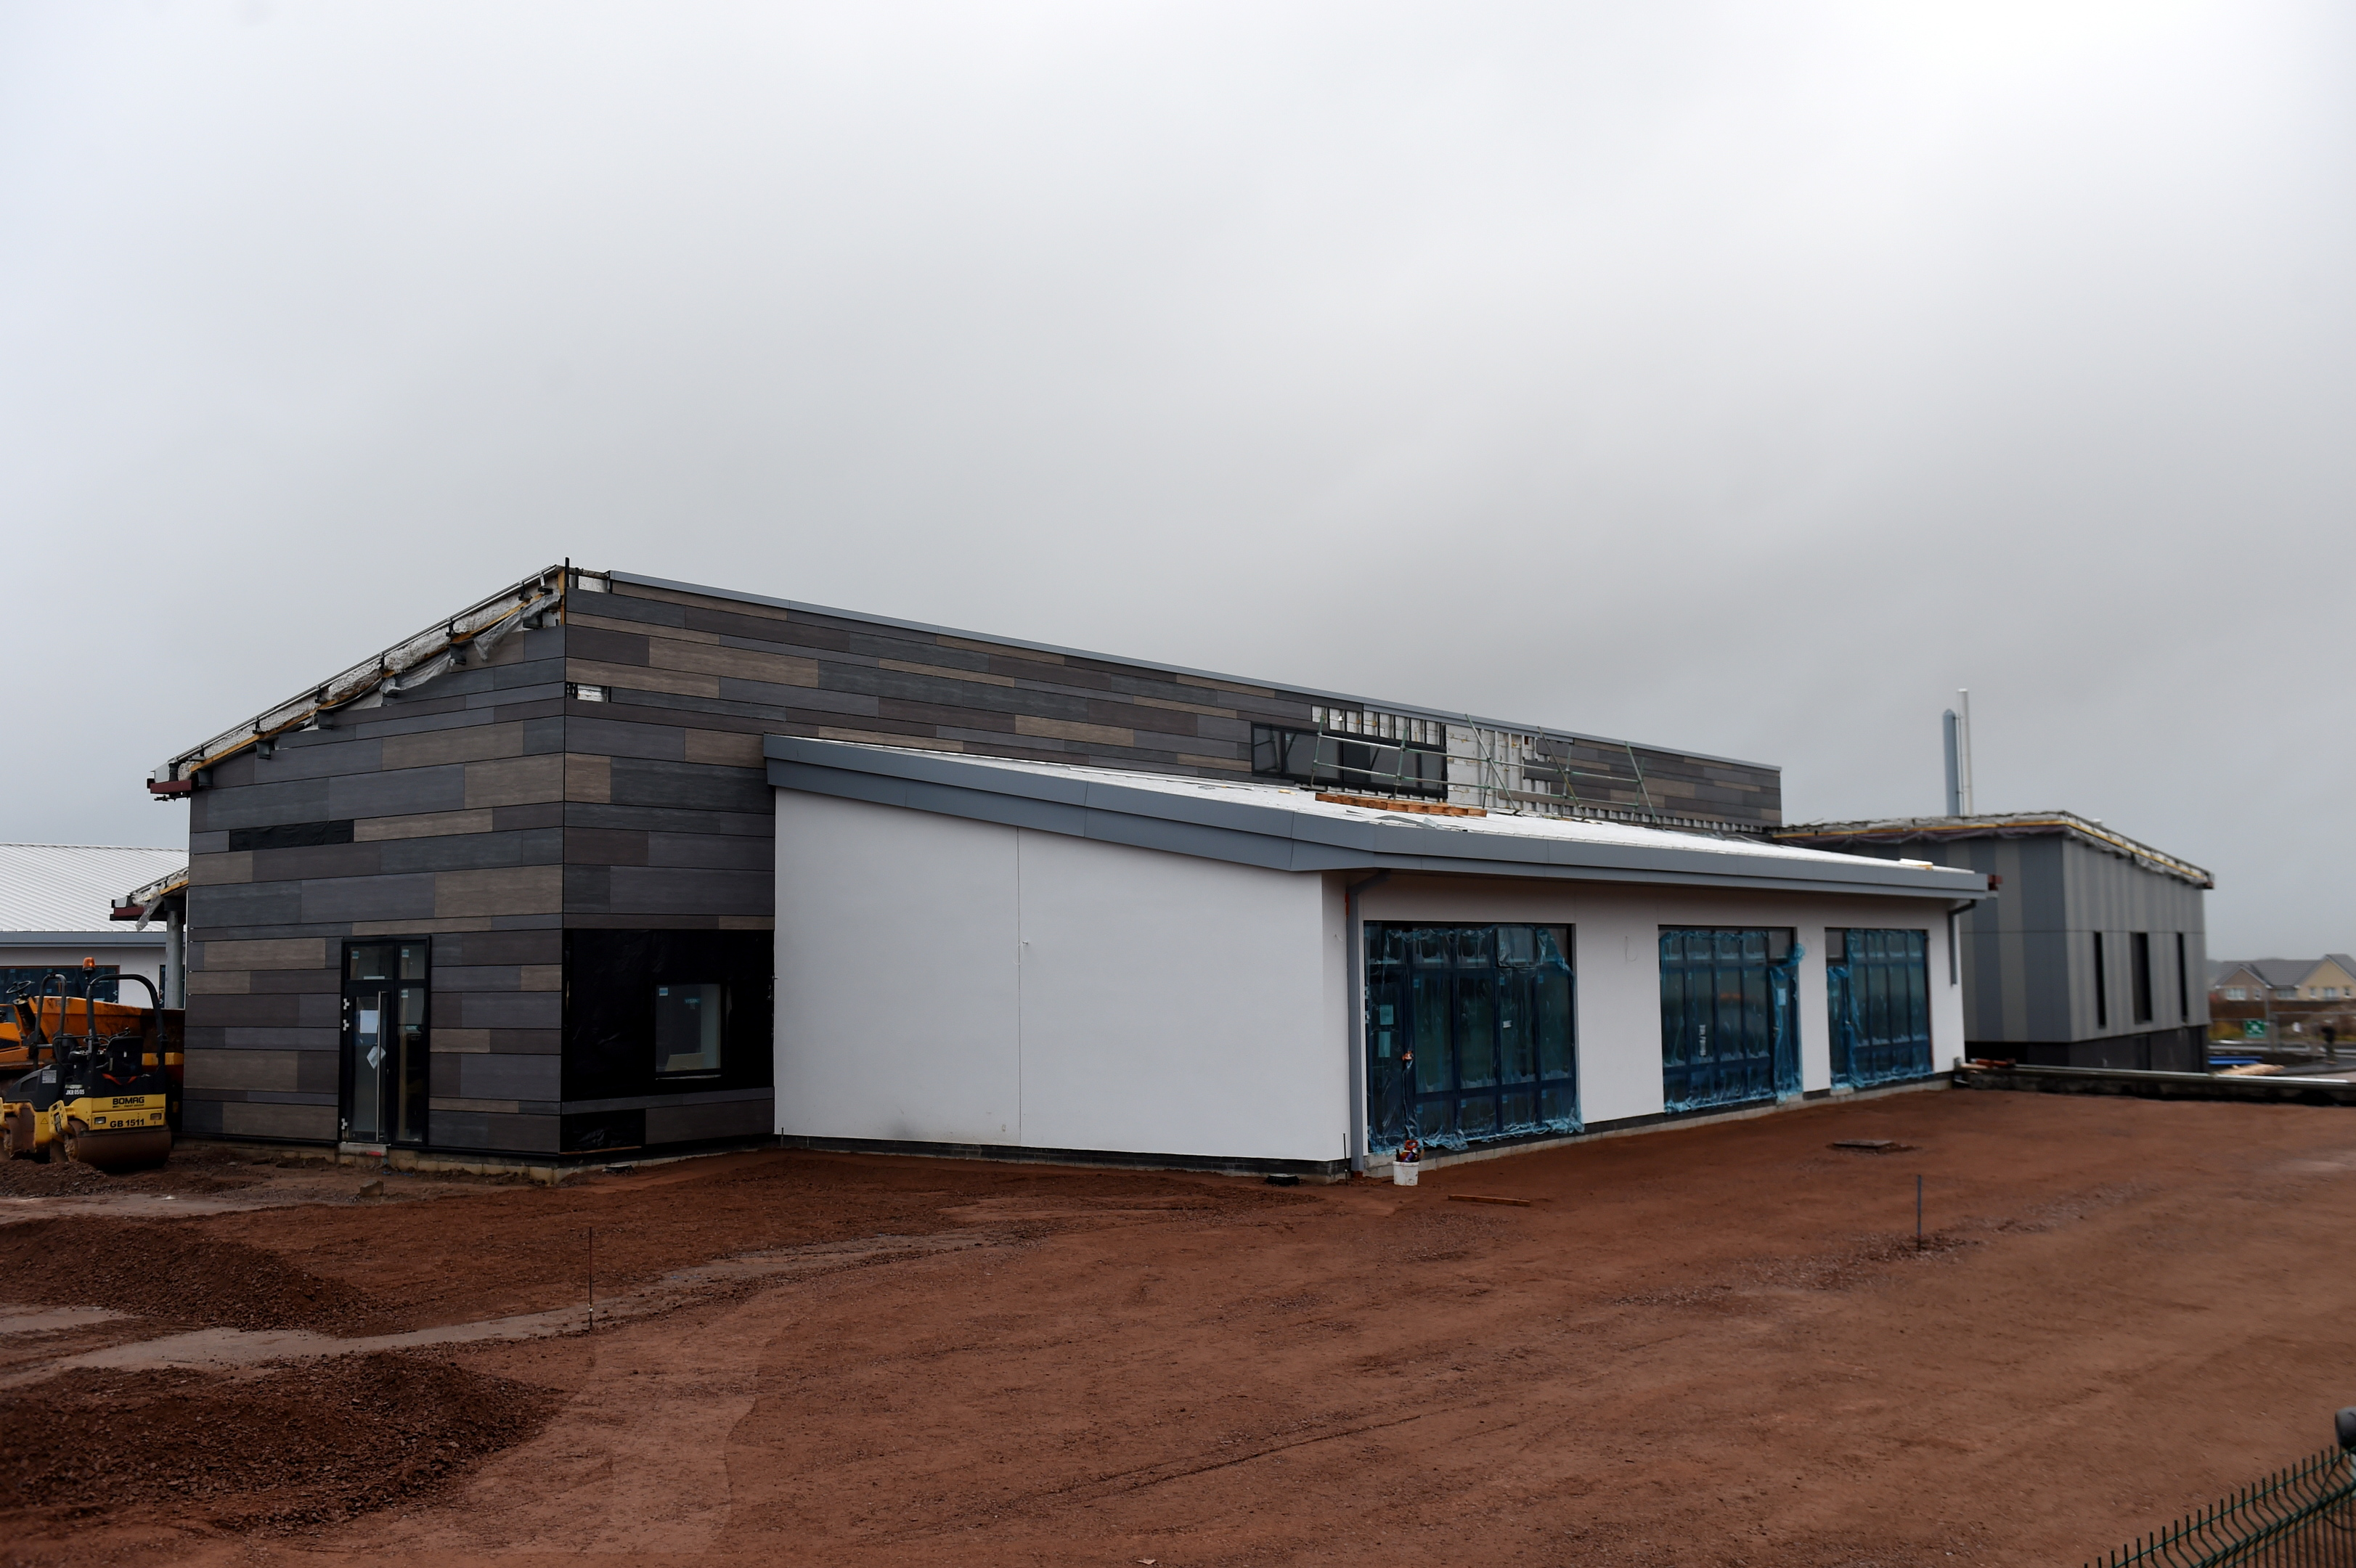 Building:  Hillside School will open in March – seven months after its expected completion date.